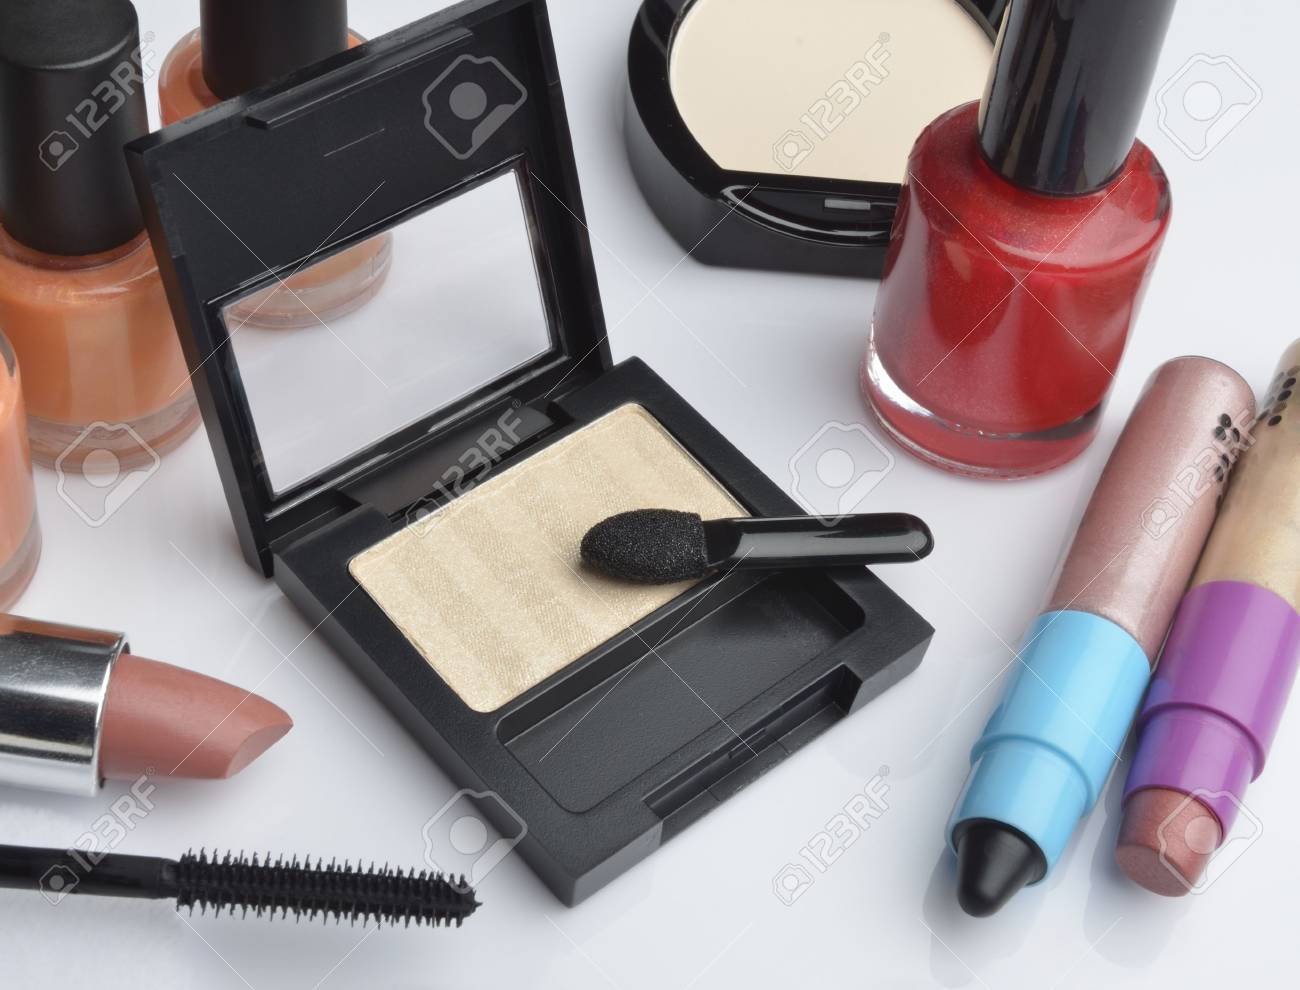 Make-up cosmetics on white background Stock Photo - 20926032